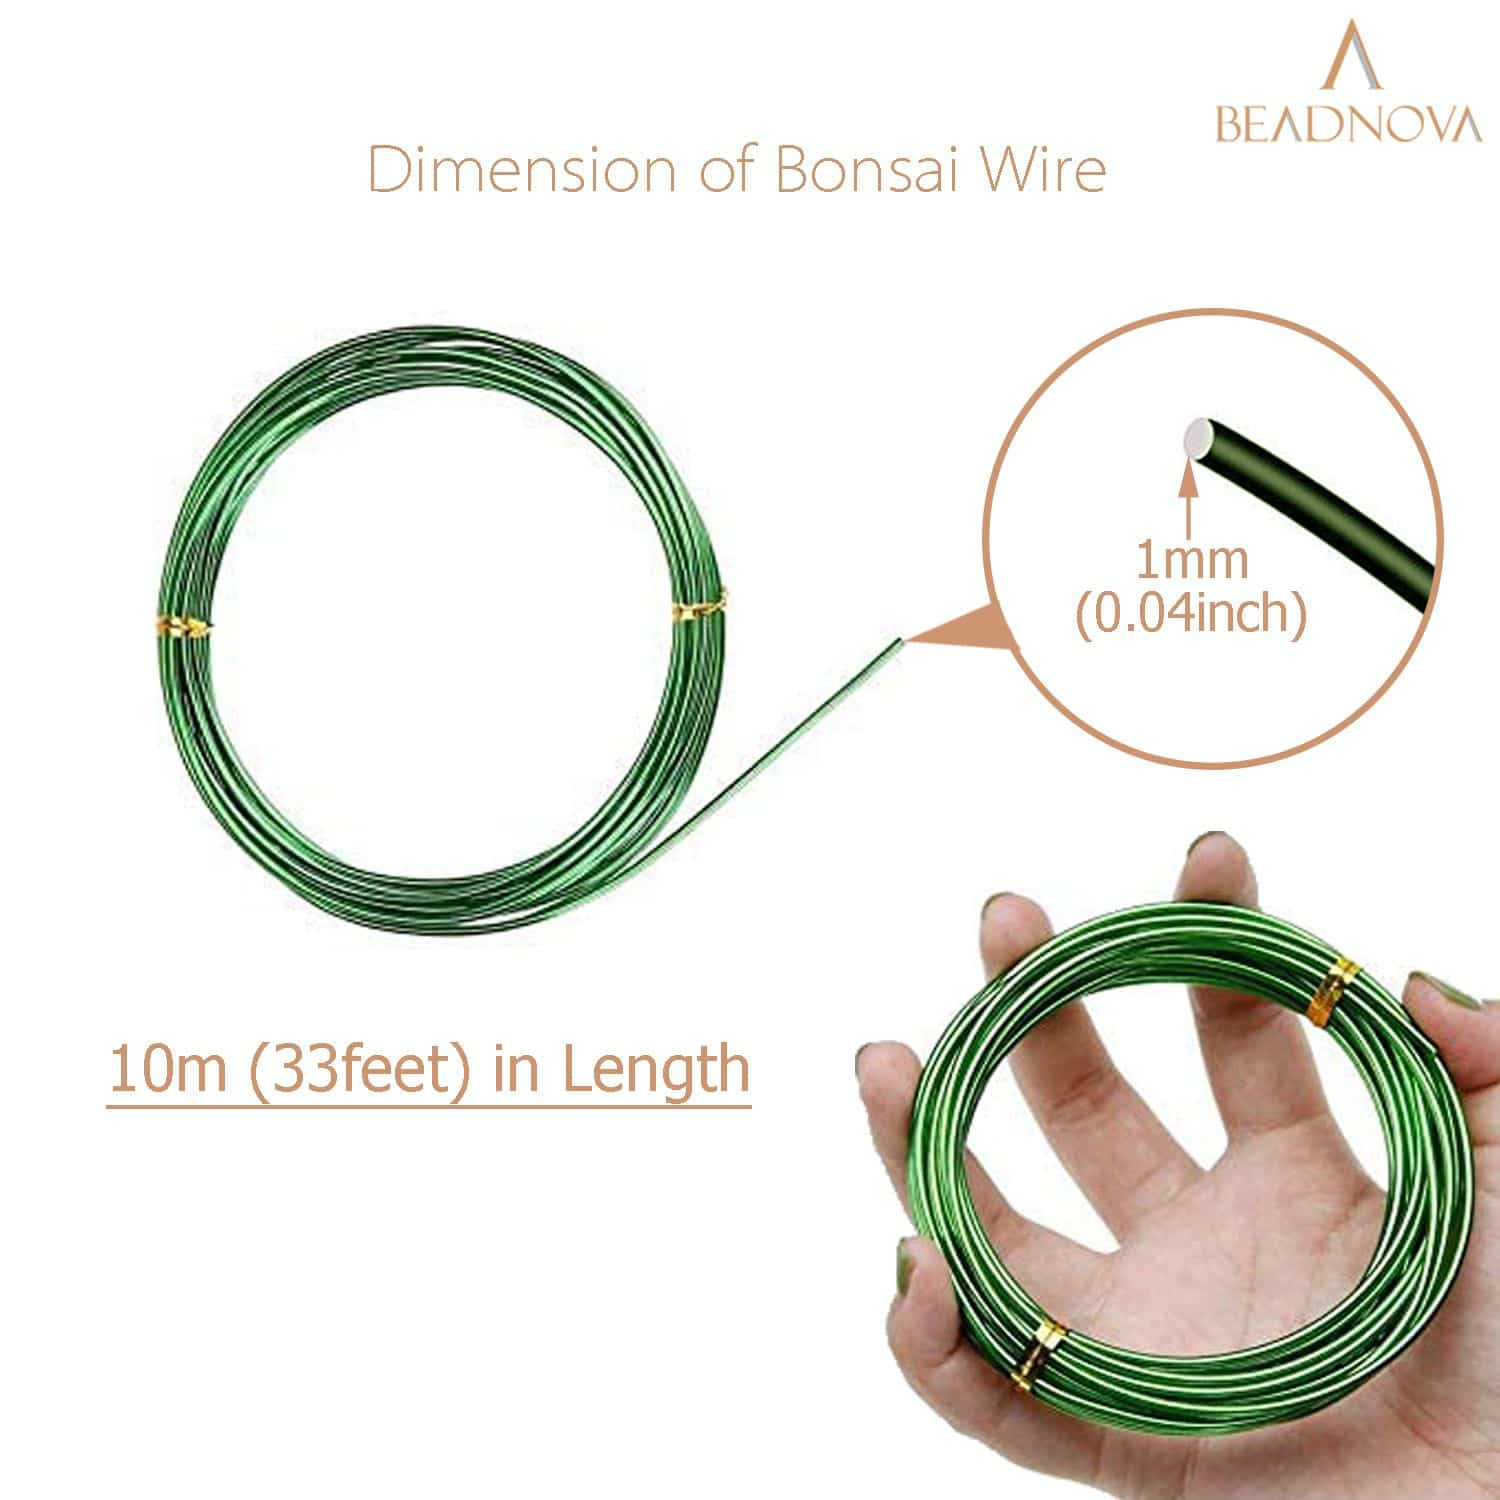 BEADNOVA Bonsai Tree Wire 33 Feet Green Aluminum Wire Bonsai Tree Training Wire for Indoor and Outdoor Bonsai Plant (Green, 1mm, 30m)